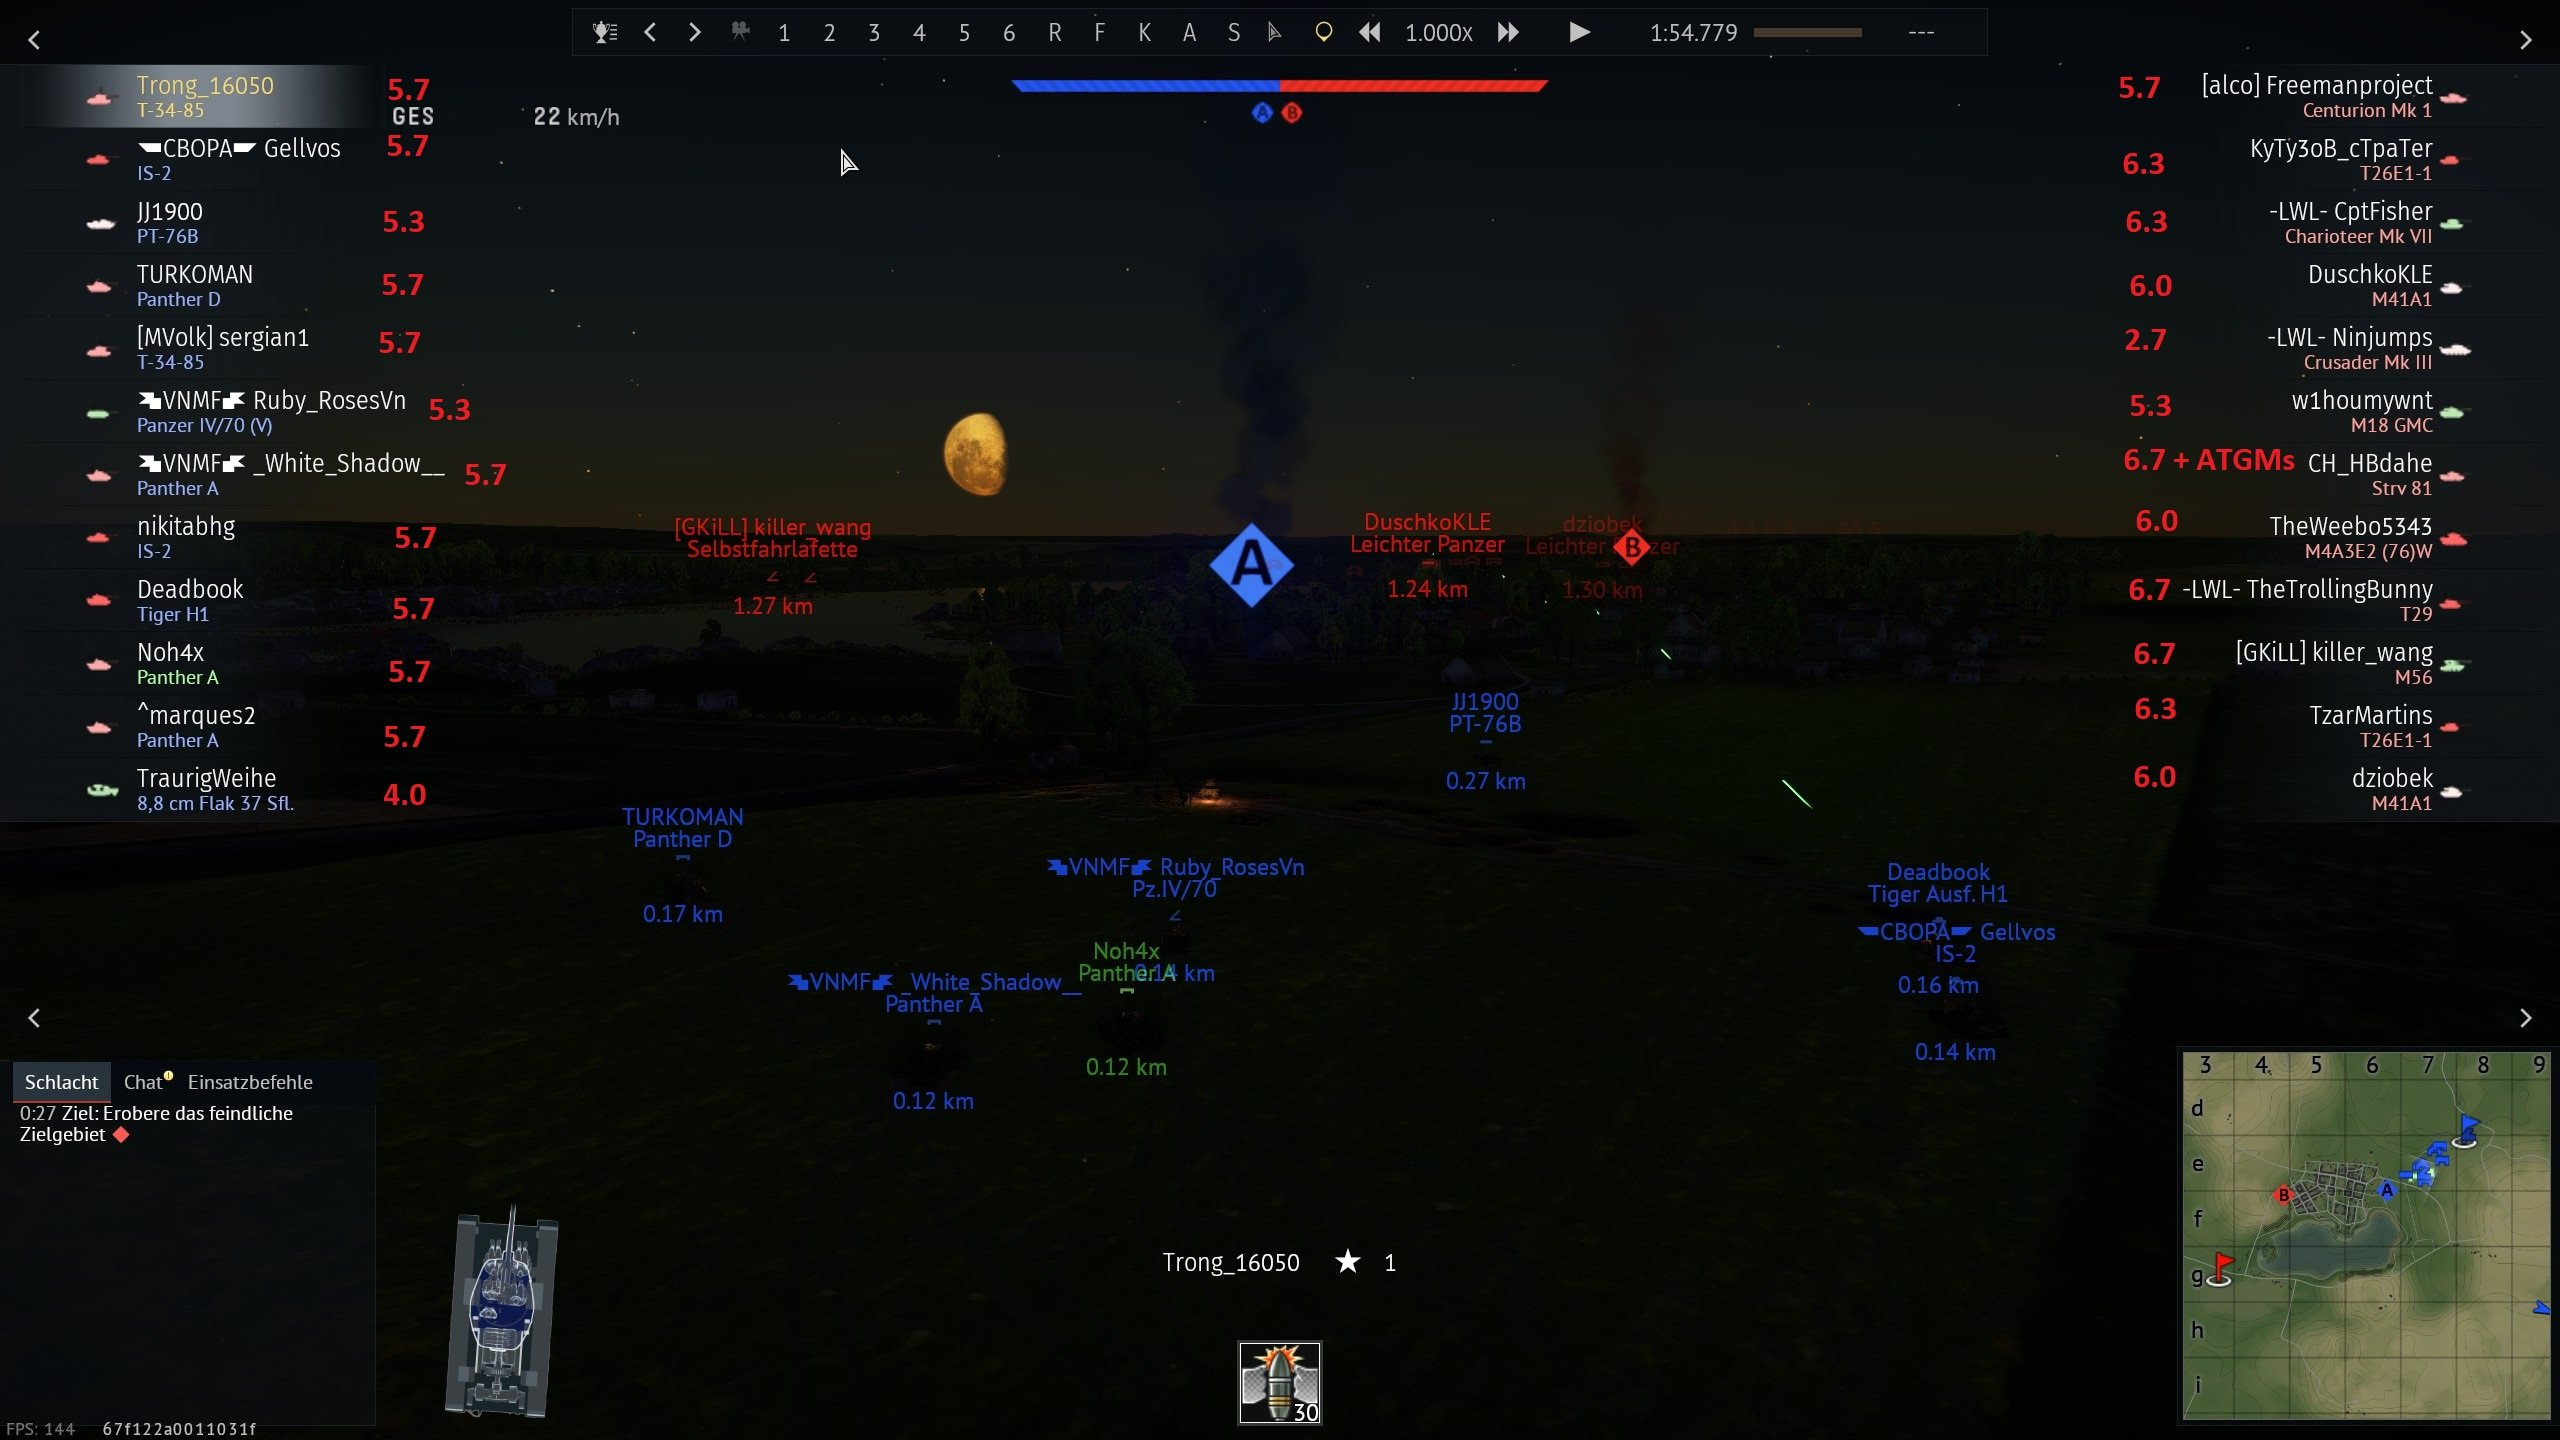 Matchmaking thread discussion Lightweight Matchmaking